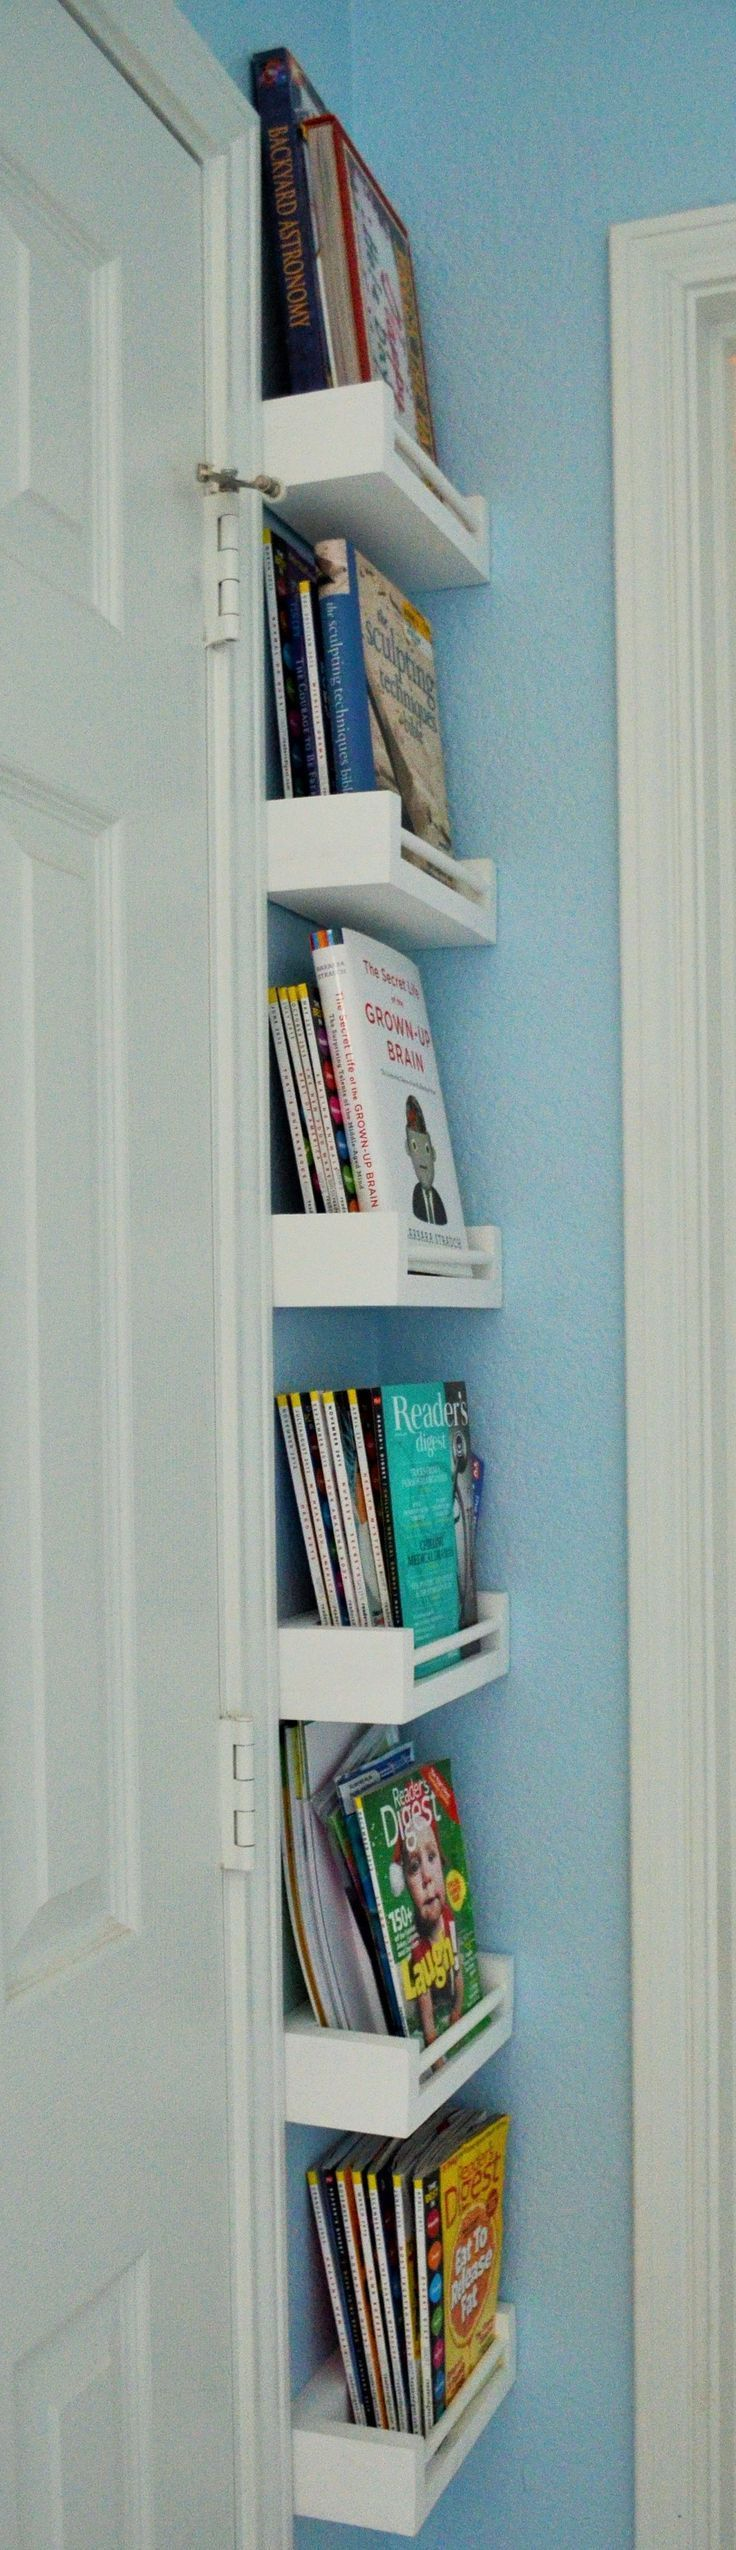 Best 25+ Kid bookshelves ideas on Pinterest | Kids wall bookshelf, Kids room  bookshelves and Book racks for kids